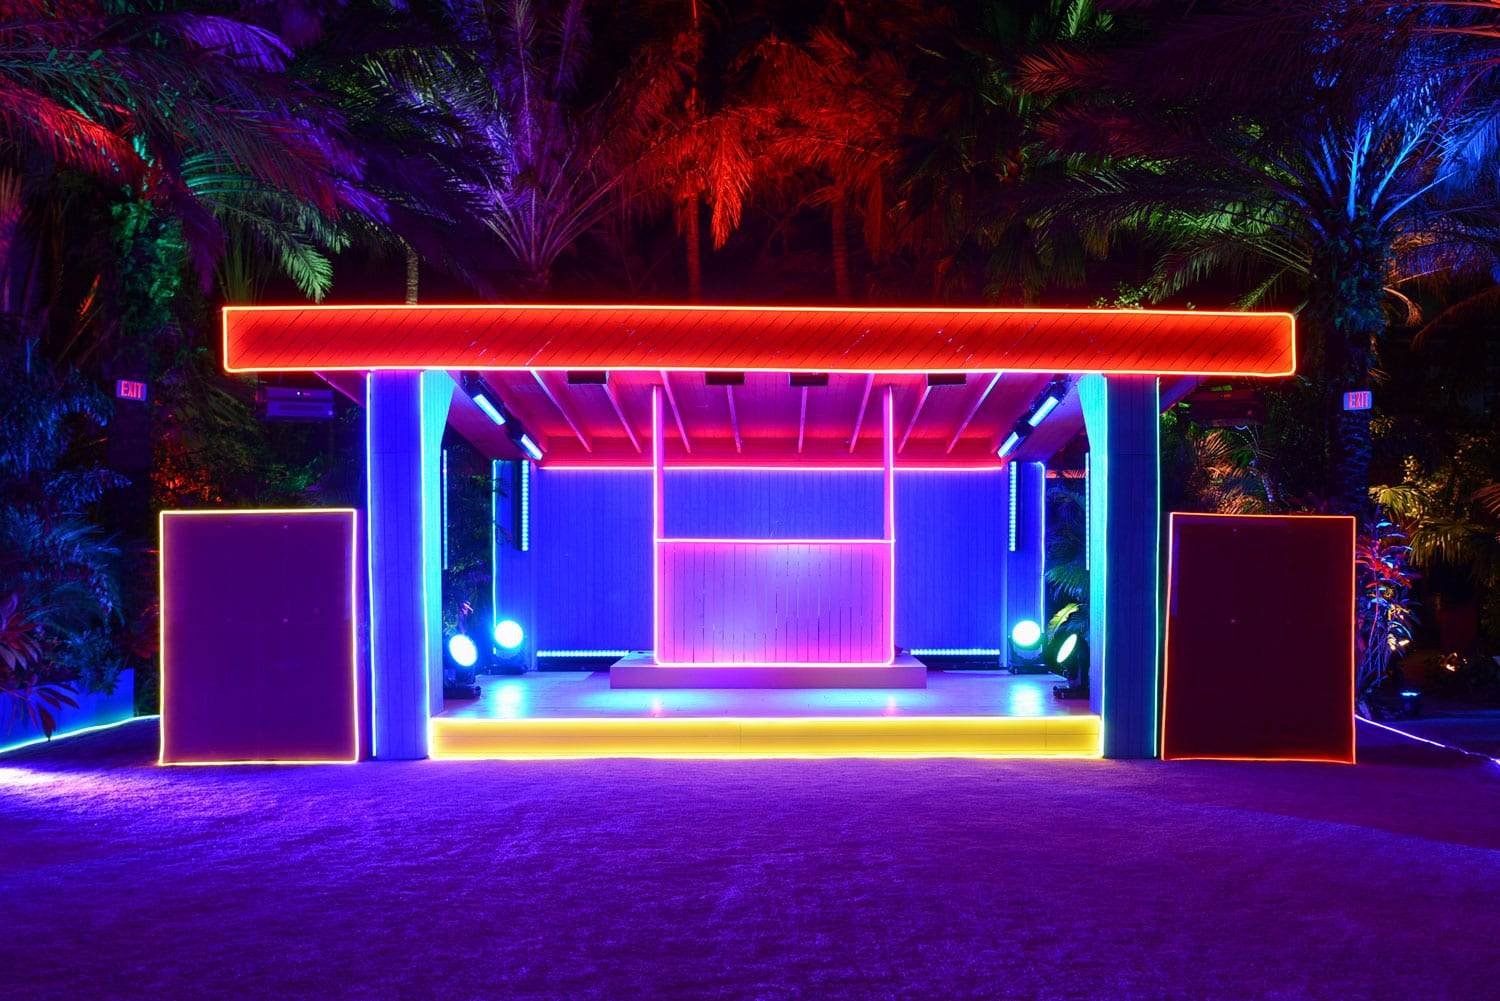 The Prada Double Club at Art Basel Miami Beach by Carsten ...